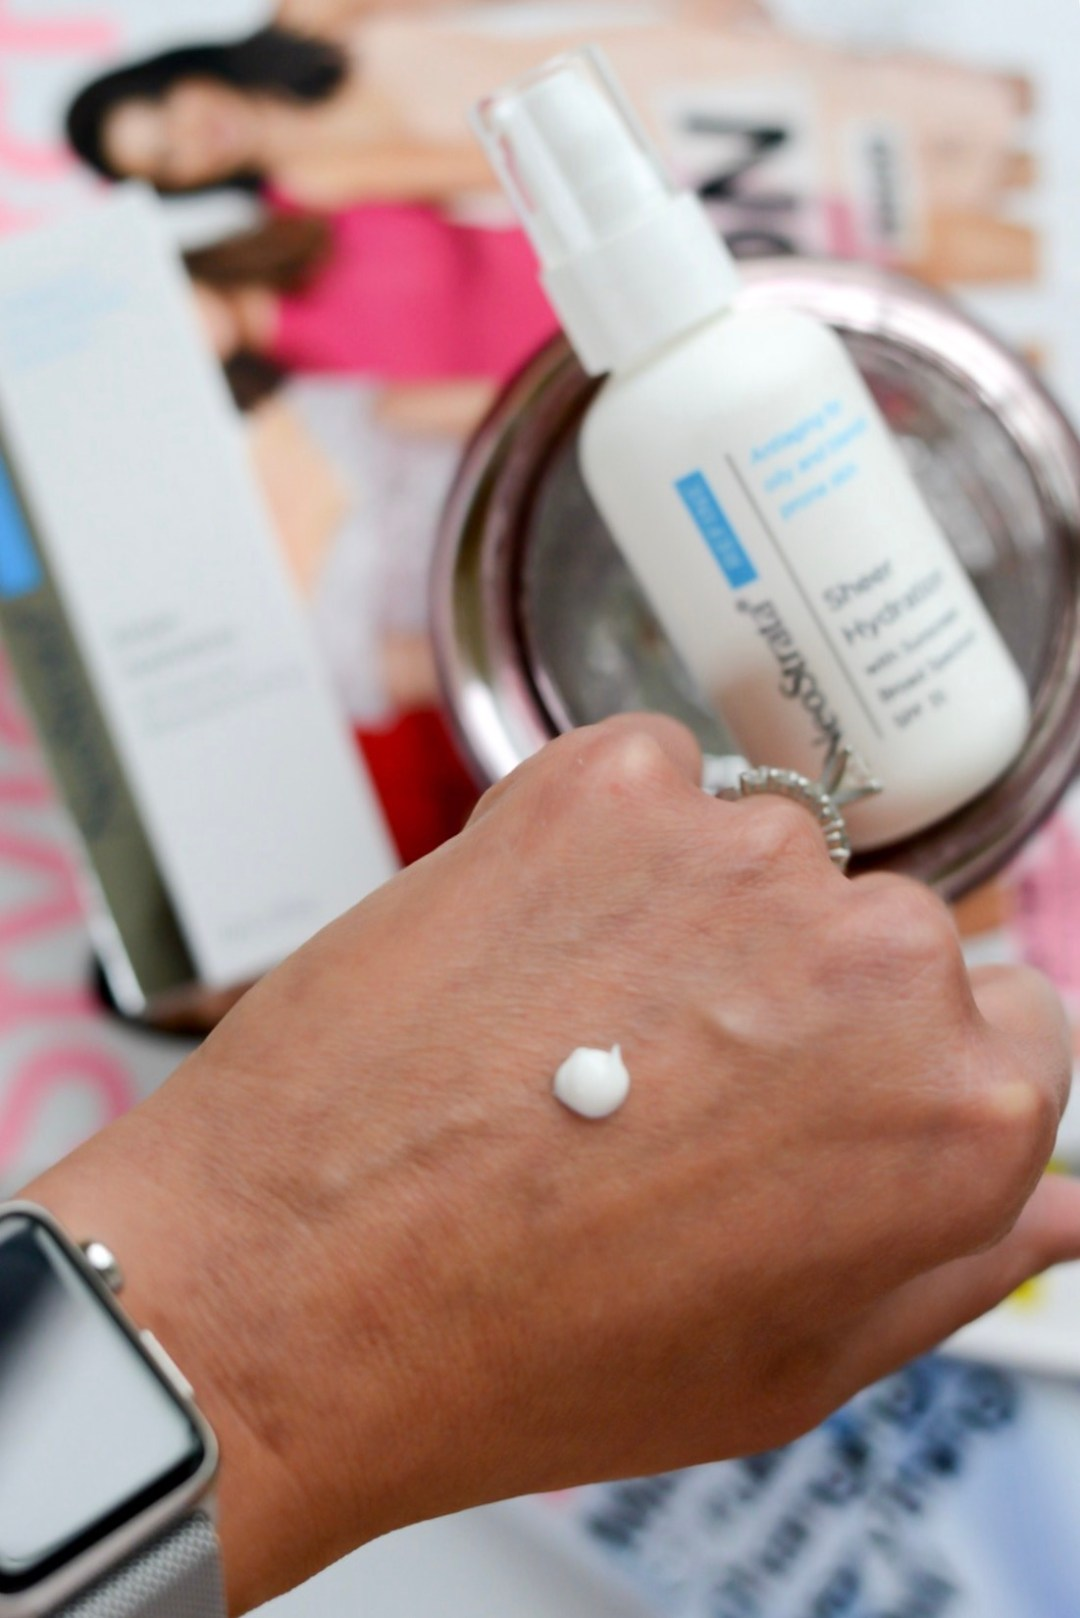 Neostrata Sheer Hydration SPF 35/ Is It Sheer Bliss? skincare